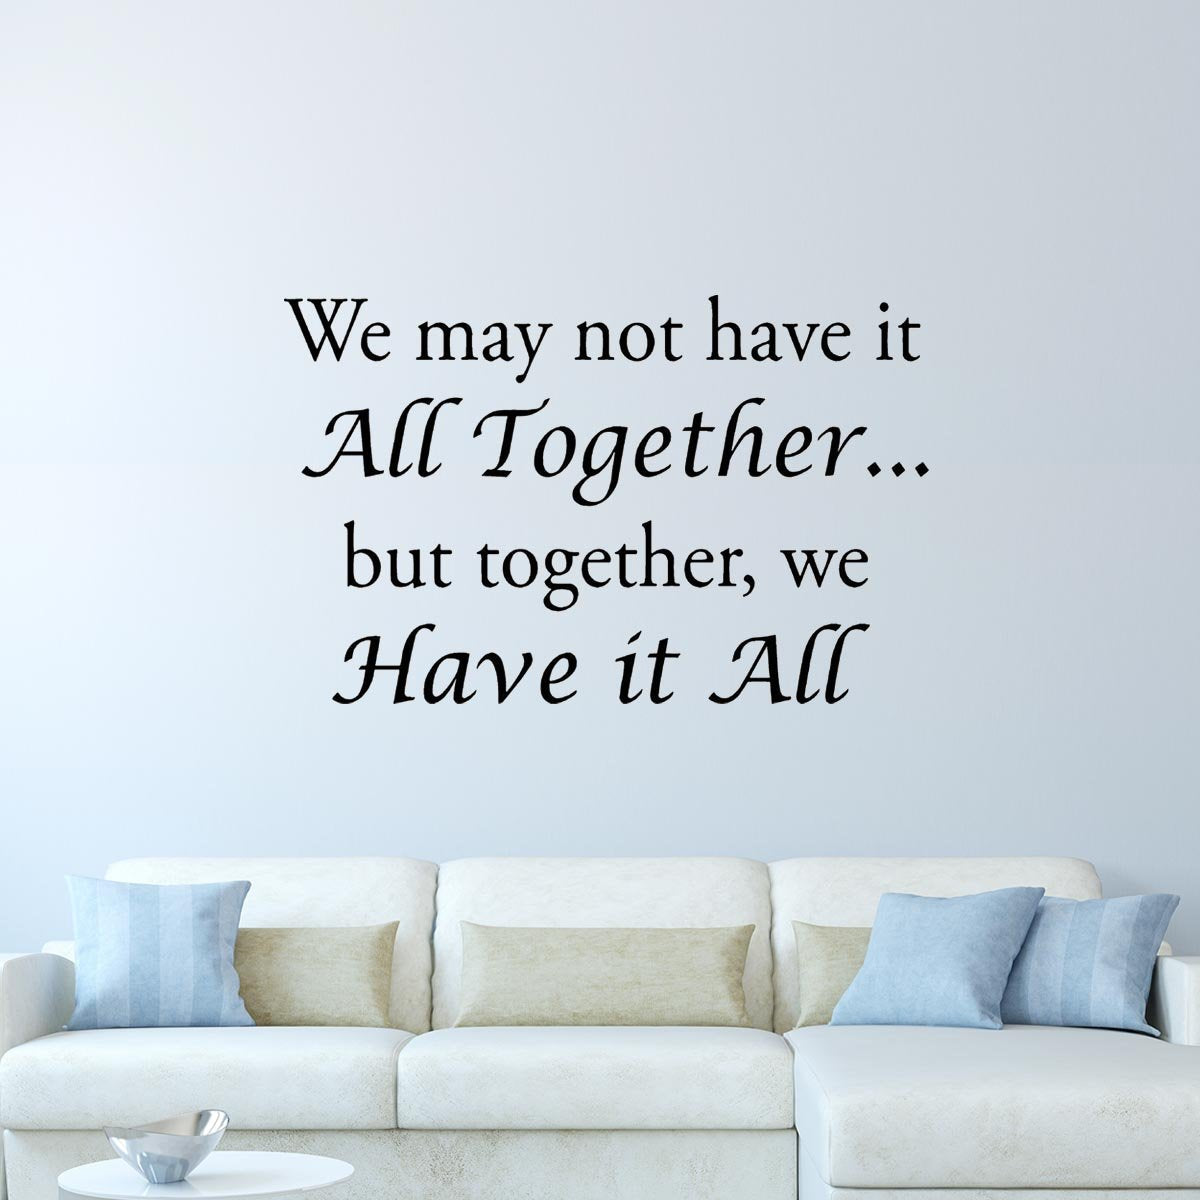 VWAQ We May Not Have it All Together But Together We Have It All Wall Decal